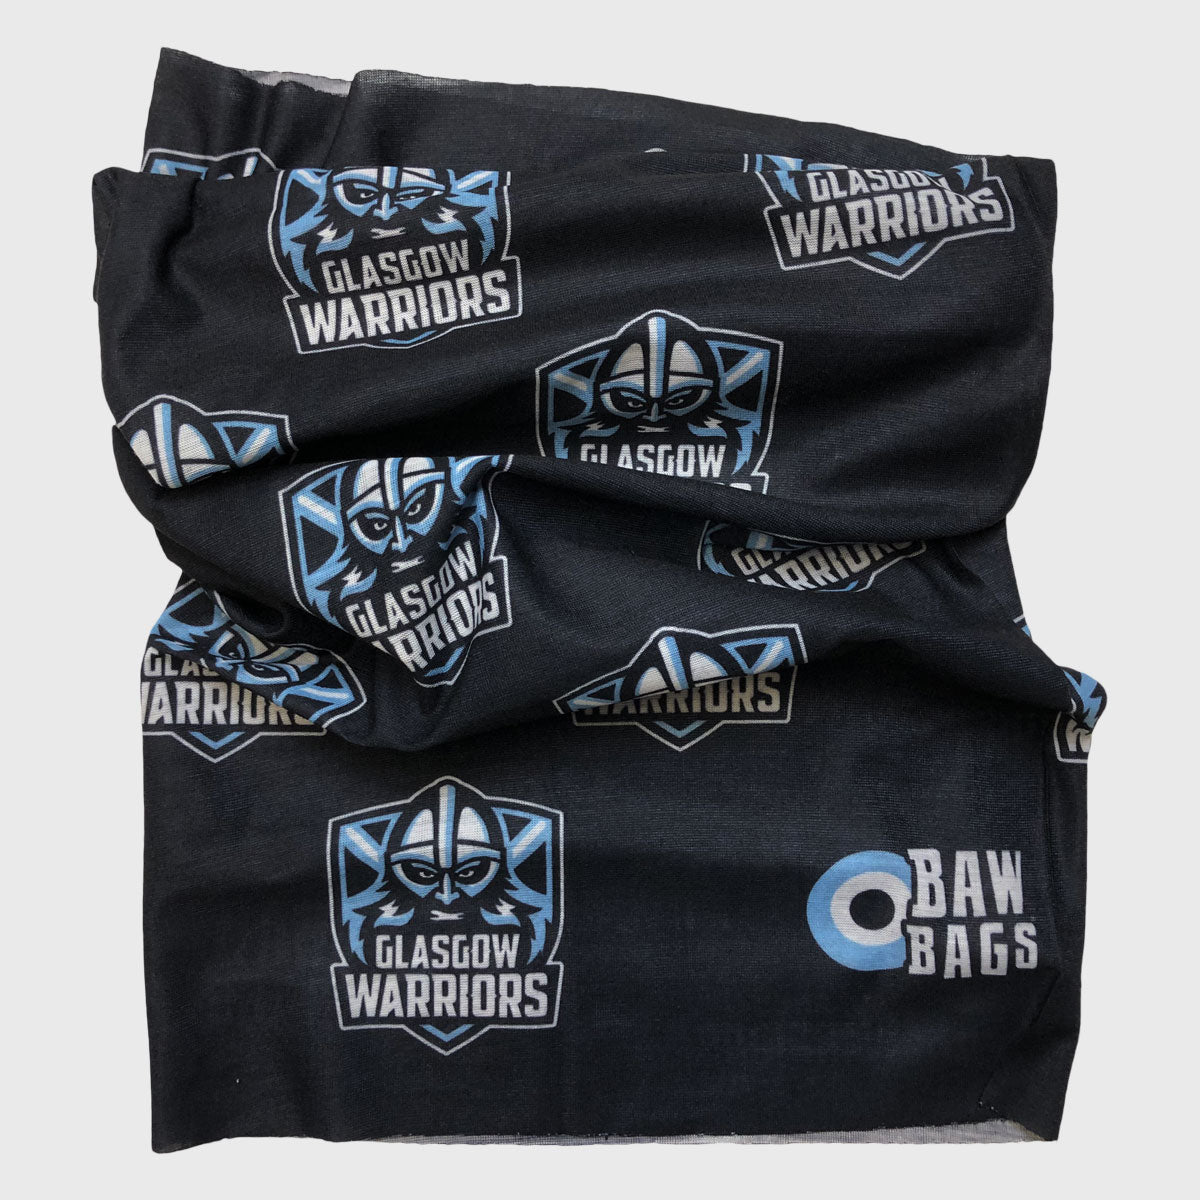 Glasgow Warriors Wizard Sleeve Buff Black